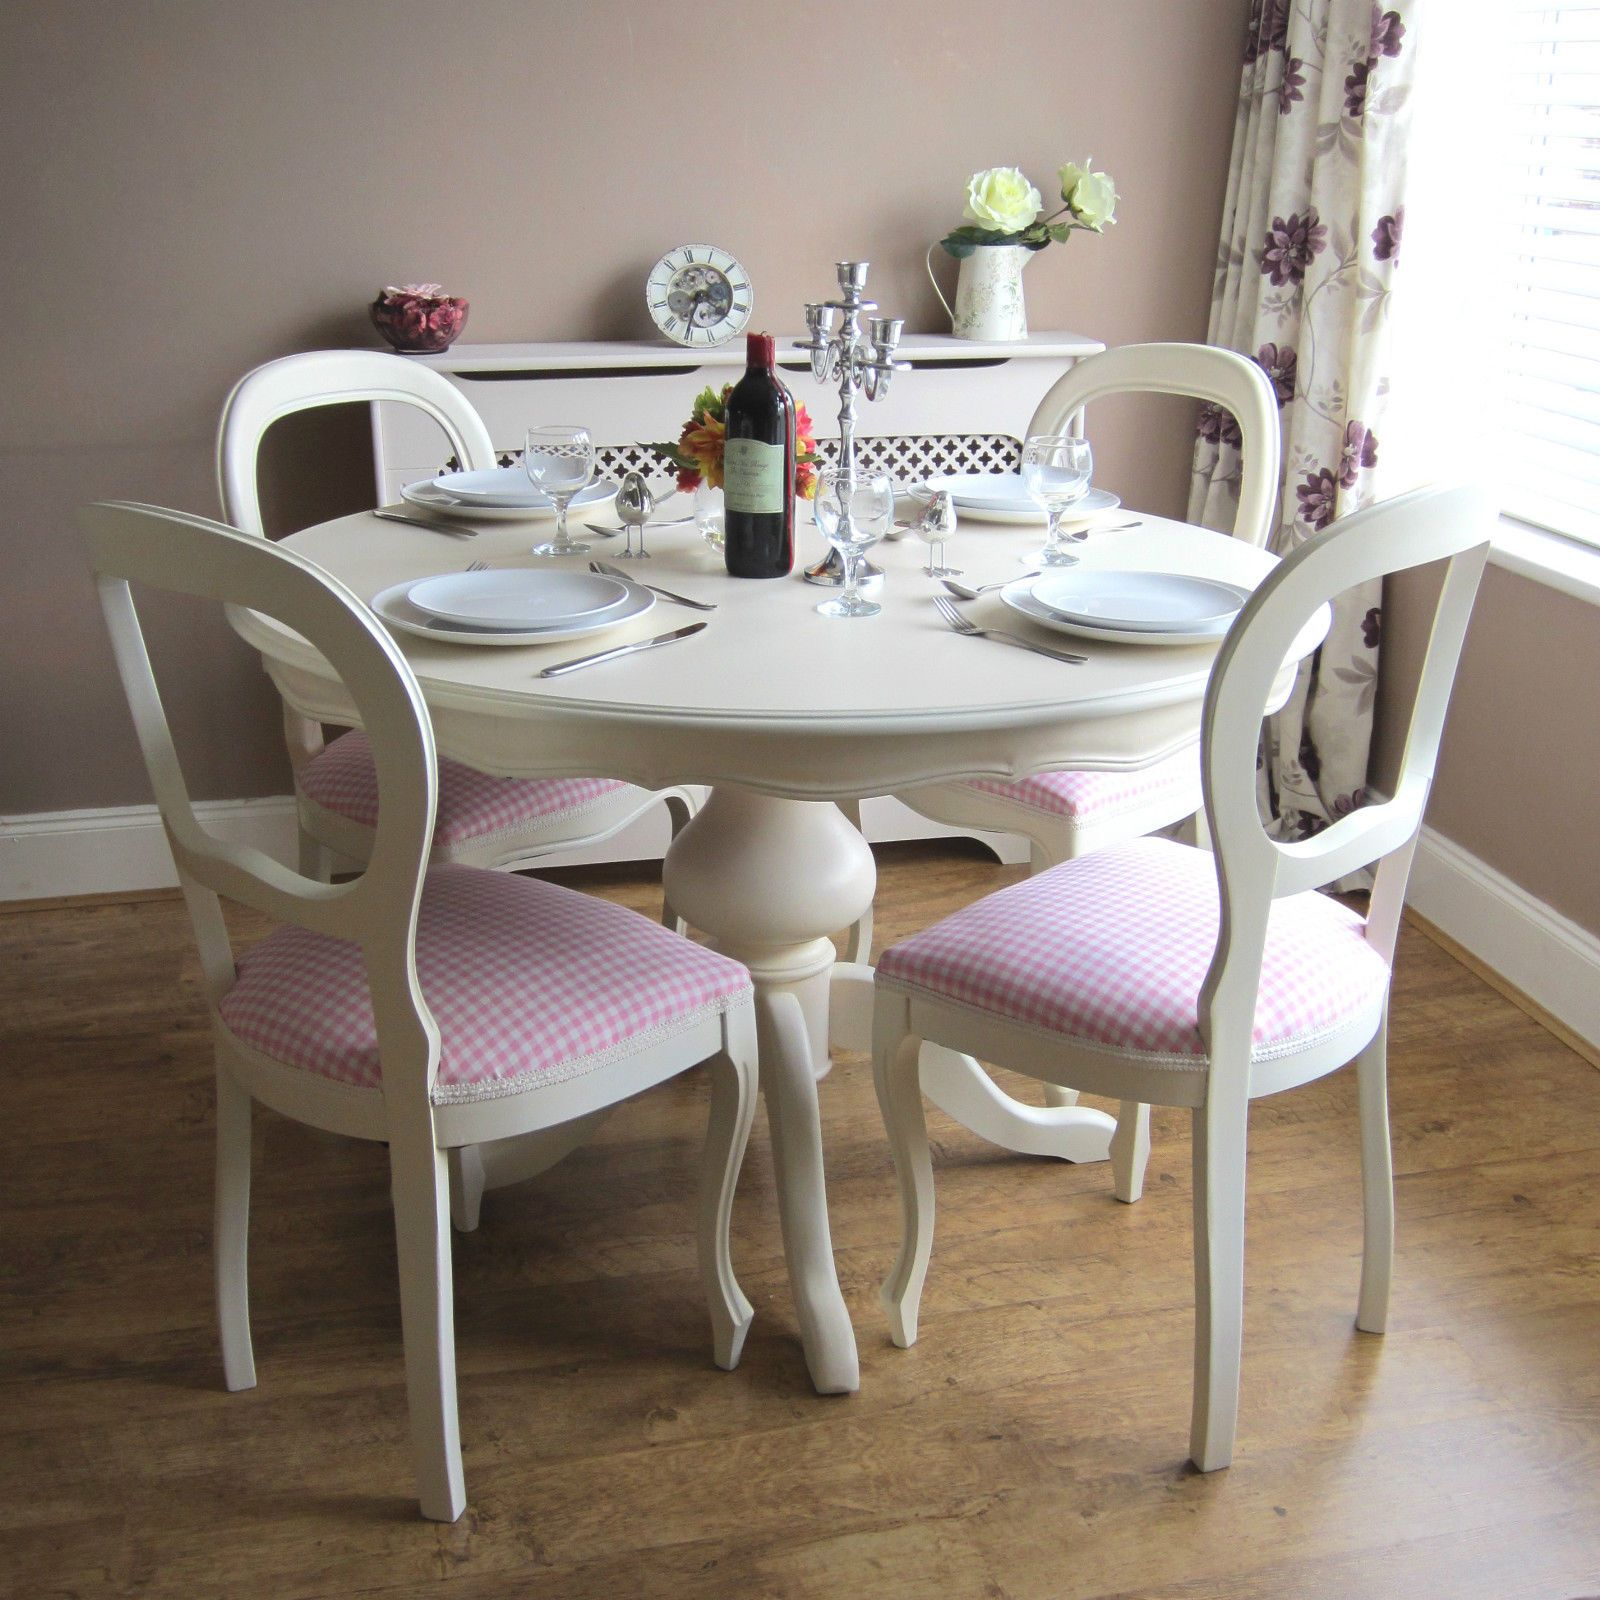 Furnitures Fashion Small Dining Room Furniture Design: Dining Room: Luxury Glass Top Dining Room Sets Silver And